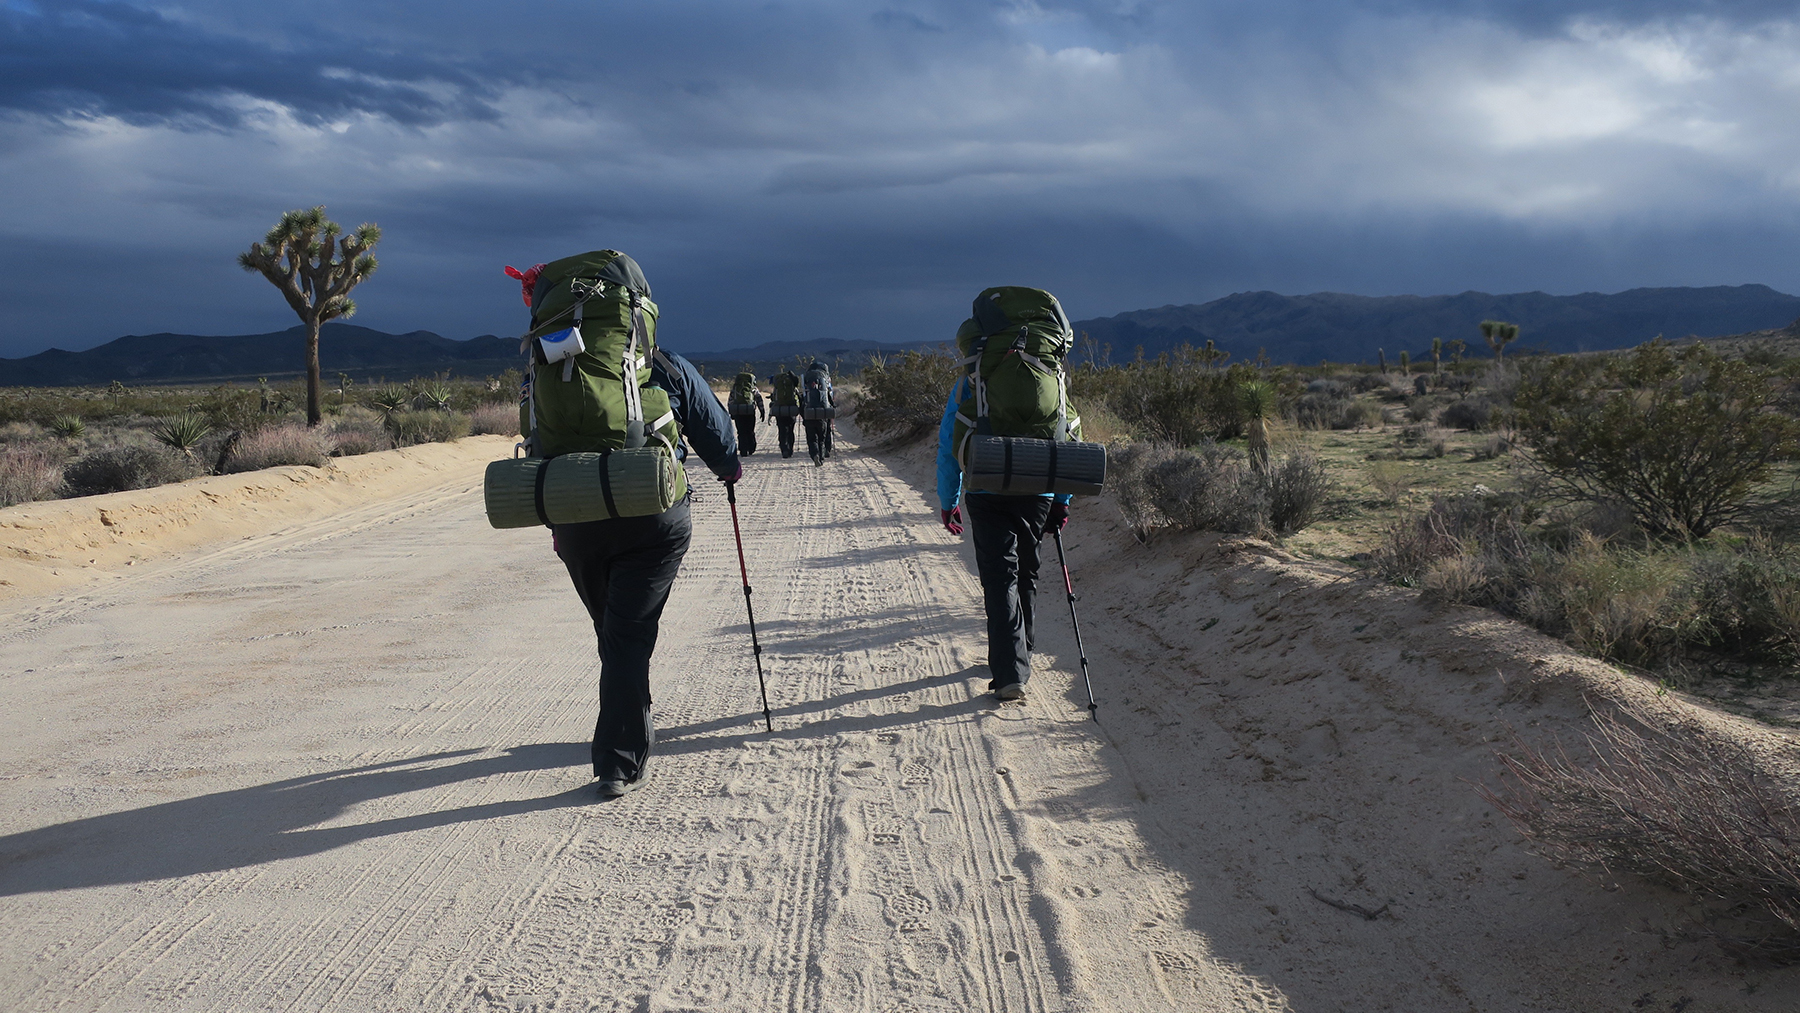 Outward Bound California instructors and Los Angeles Audubon backpacking group, hiking to the first camping site.